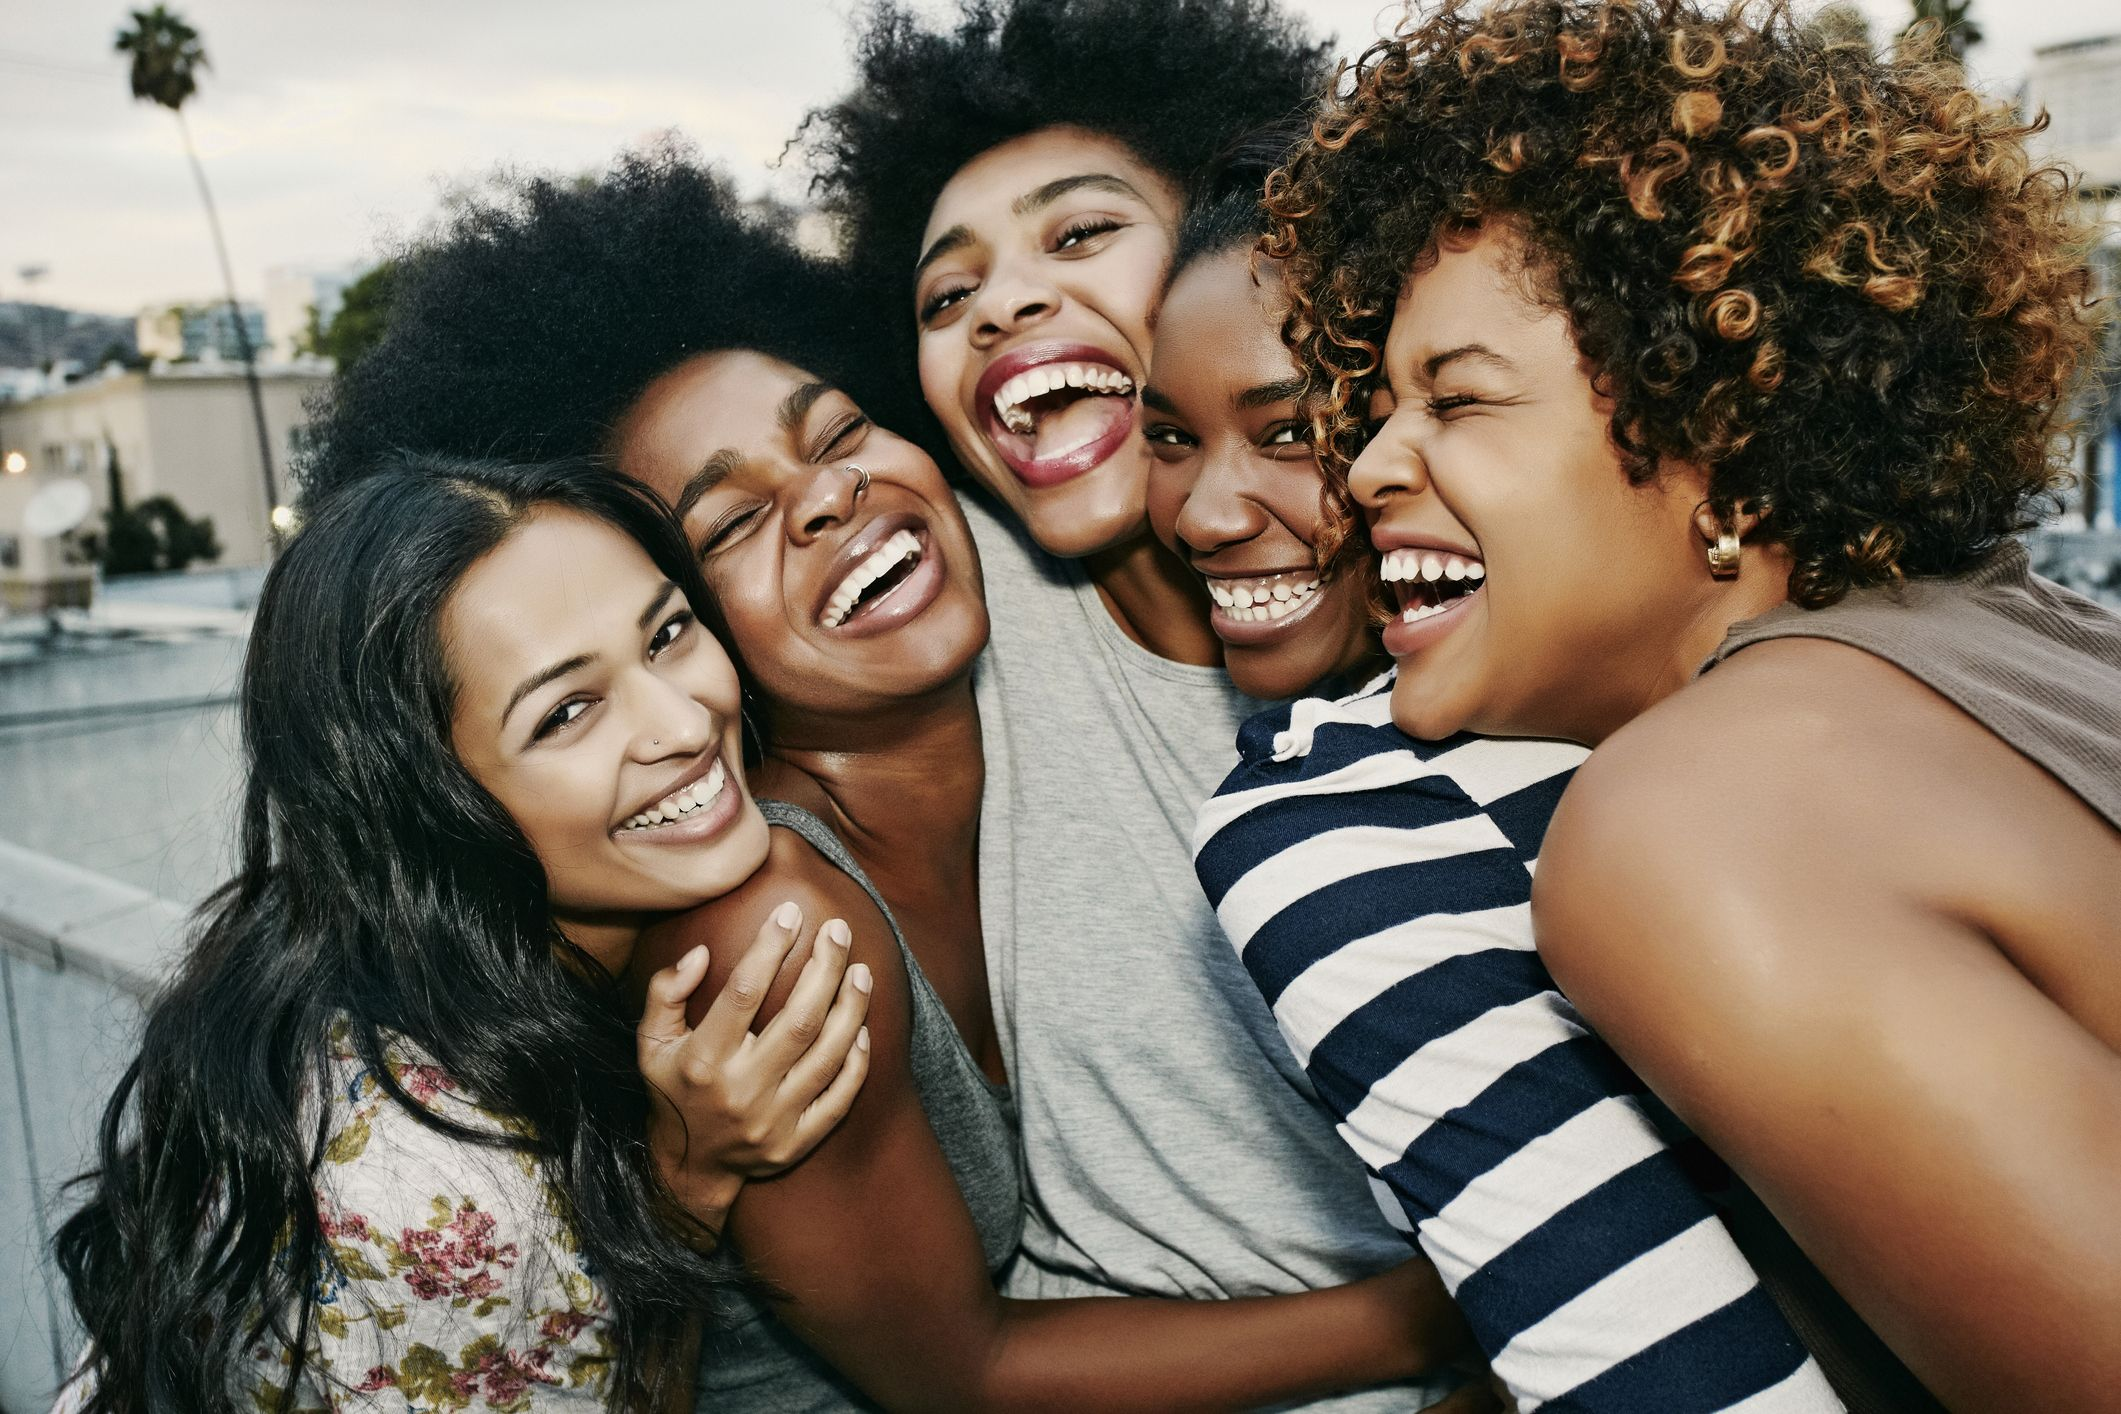 Two thirds of women are significantly more self-confident when they reach this age